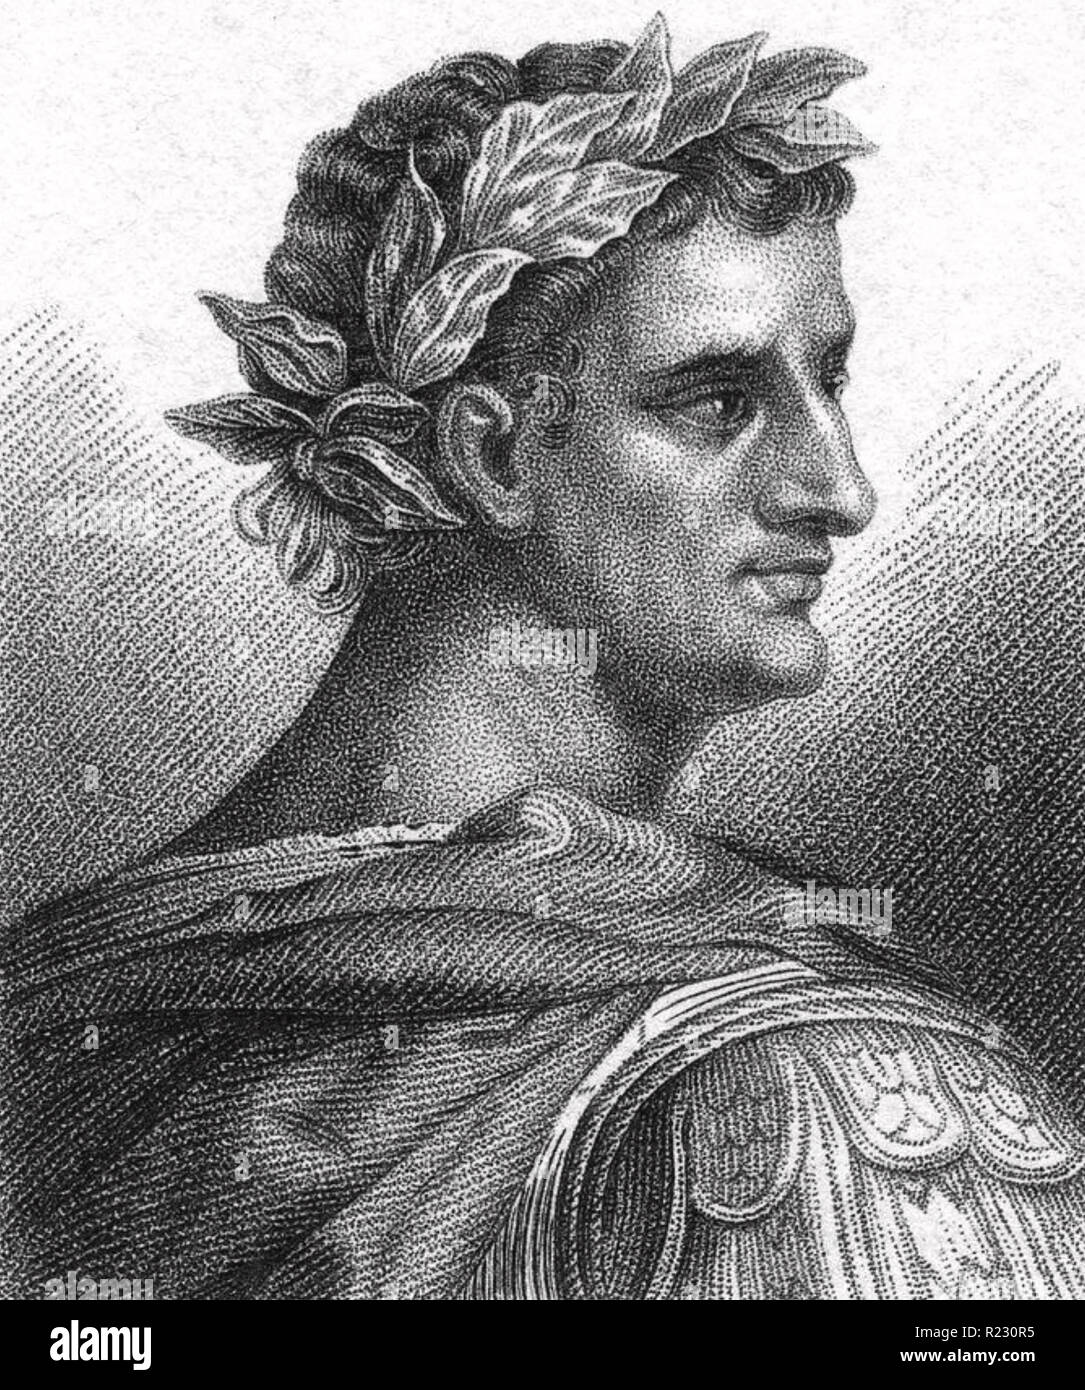 CLAUDIUS (10 BC-54 AD) early 19th century engraving - Stock Image